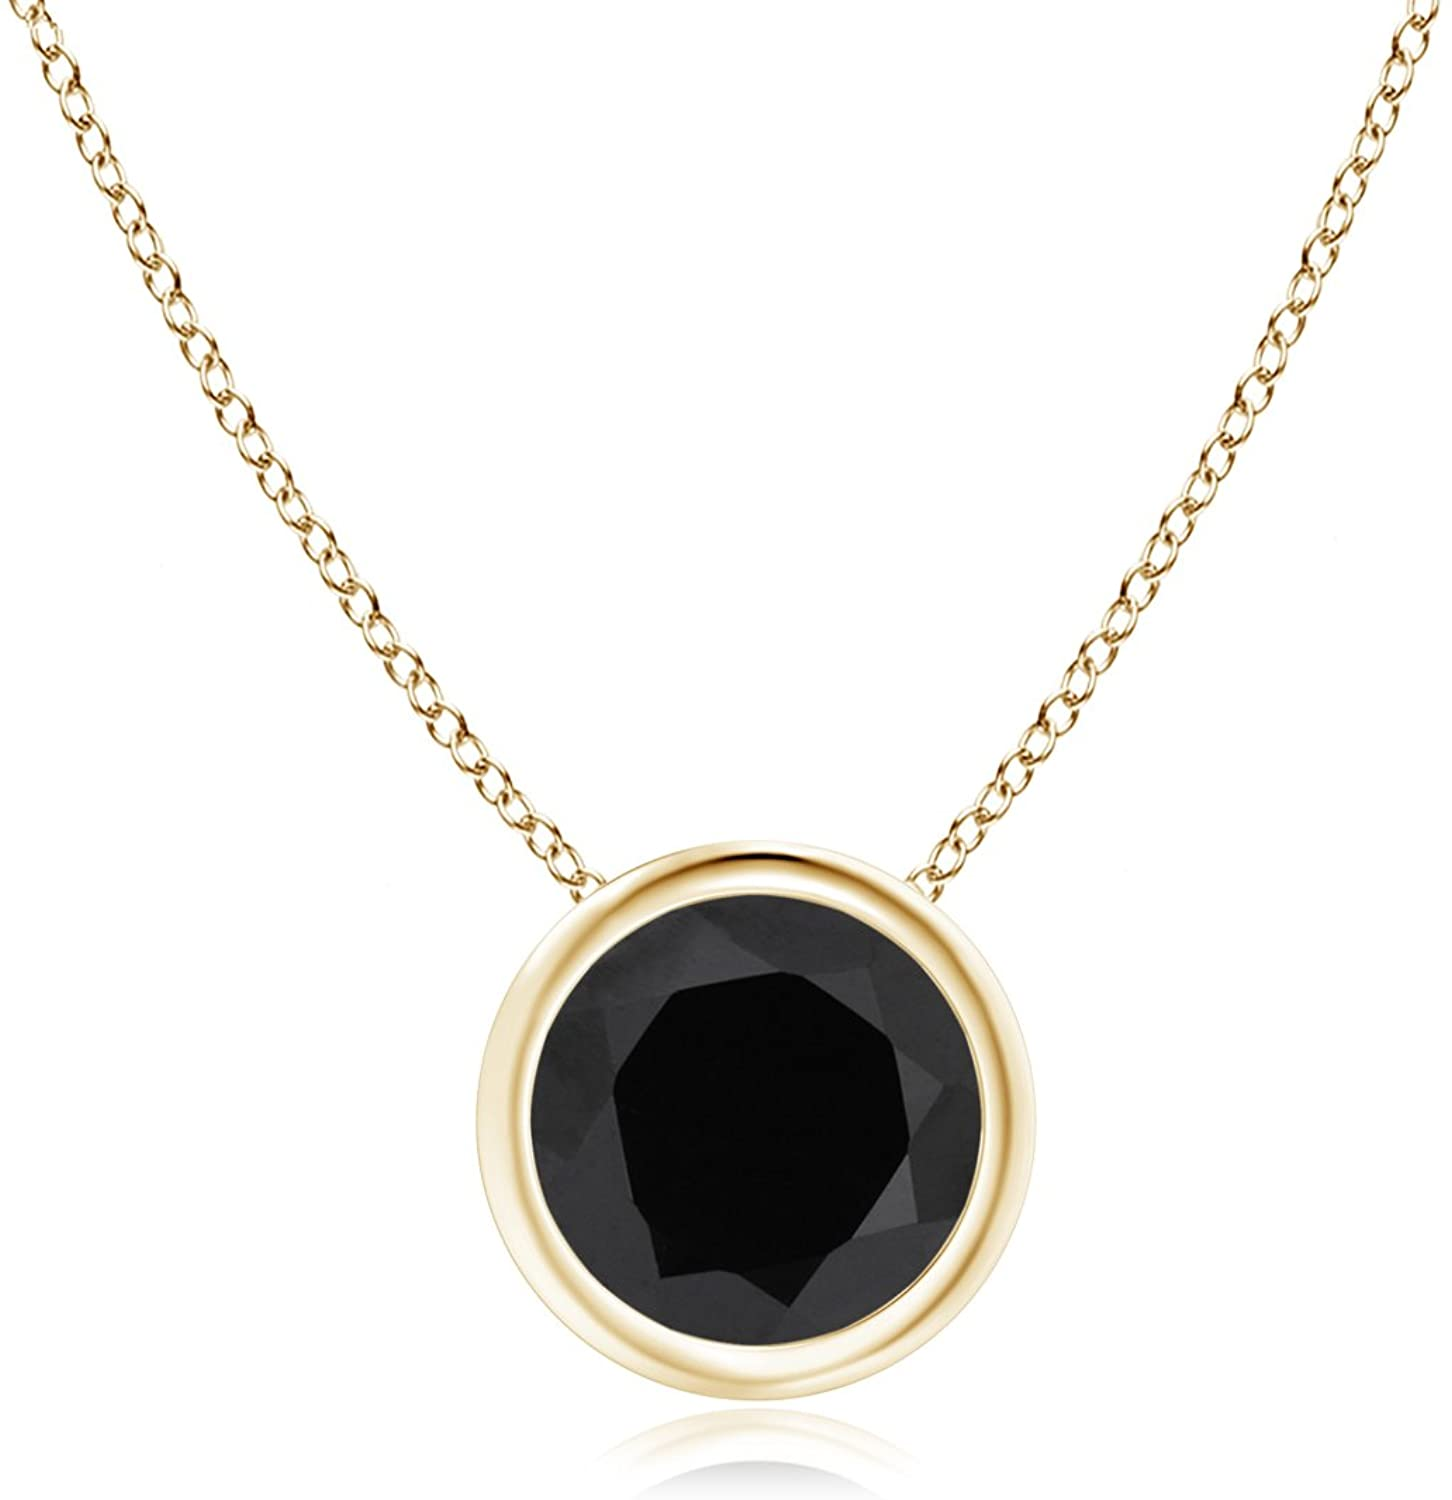 Bezel Set Round Black Onyx Solitaire Pendant in 14K Yellow Gold (6mm Black Onyx)